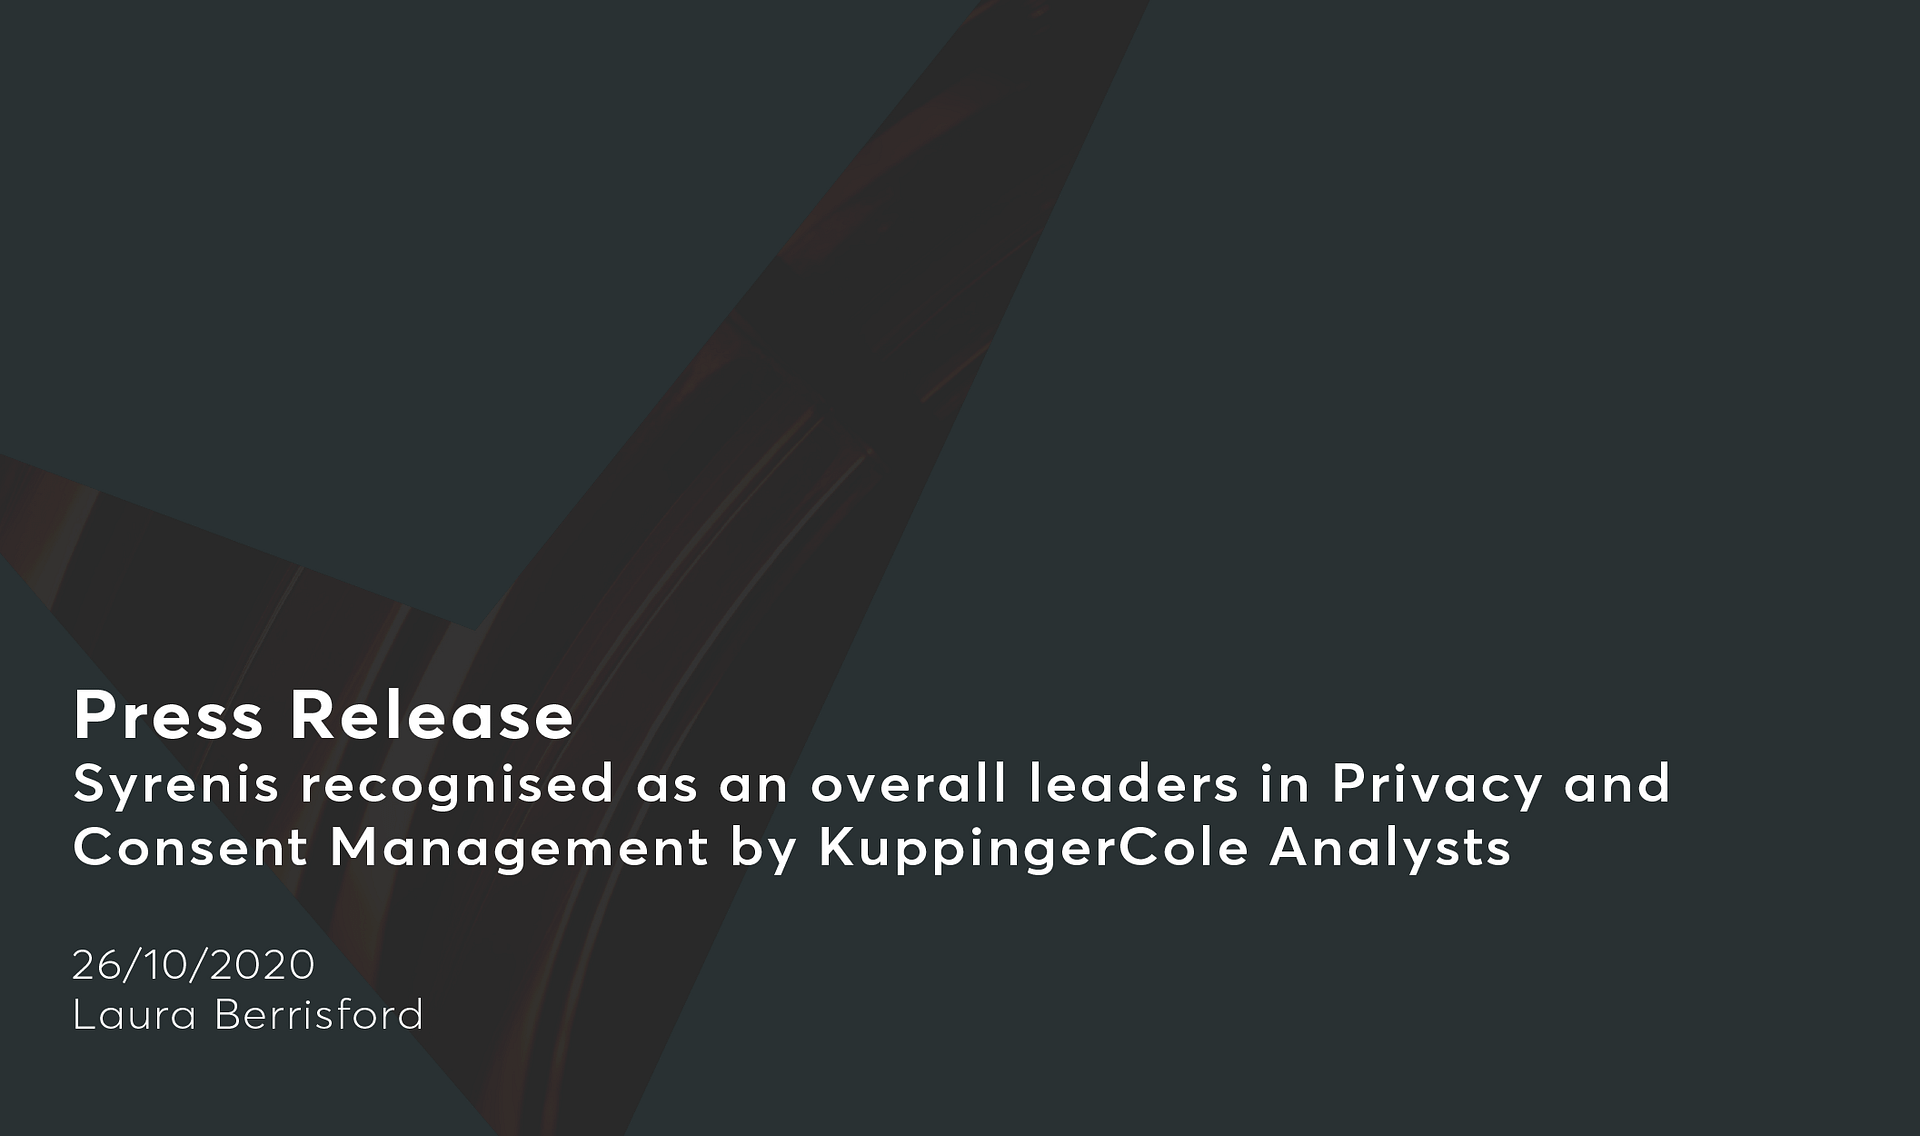 Syrenis-recognised-as-an-overall-leaders-in-Privacy-and-Consent-Management-by-Kuppingercole-Analysts